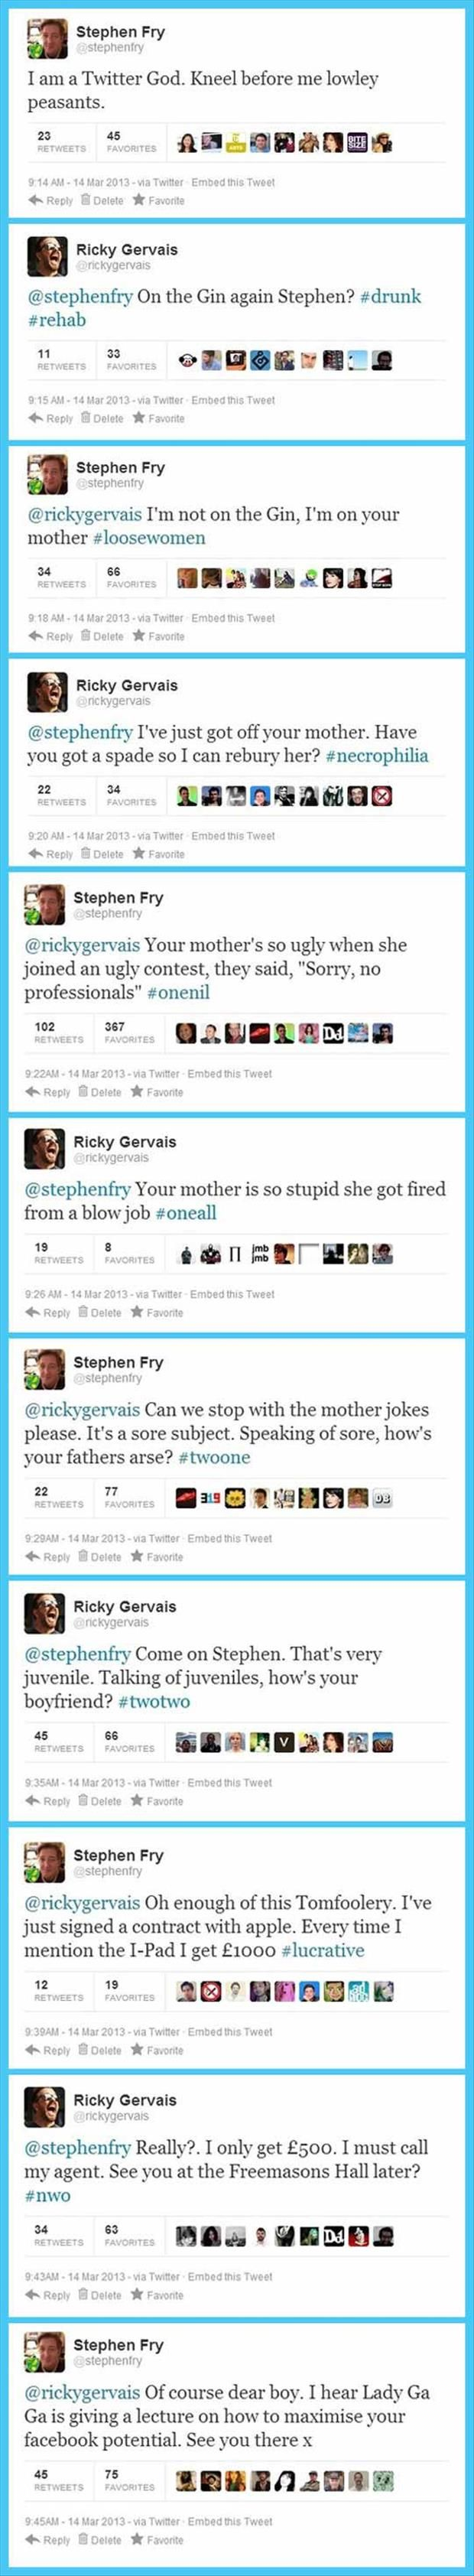 Stephen Fry and Ricky Gervais on Twitter. Anyone else read this in their voices?